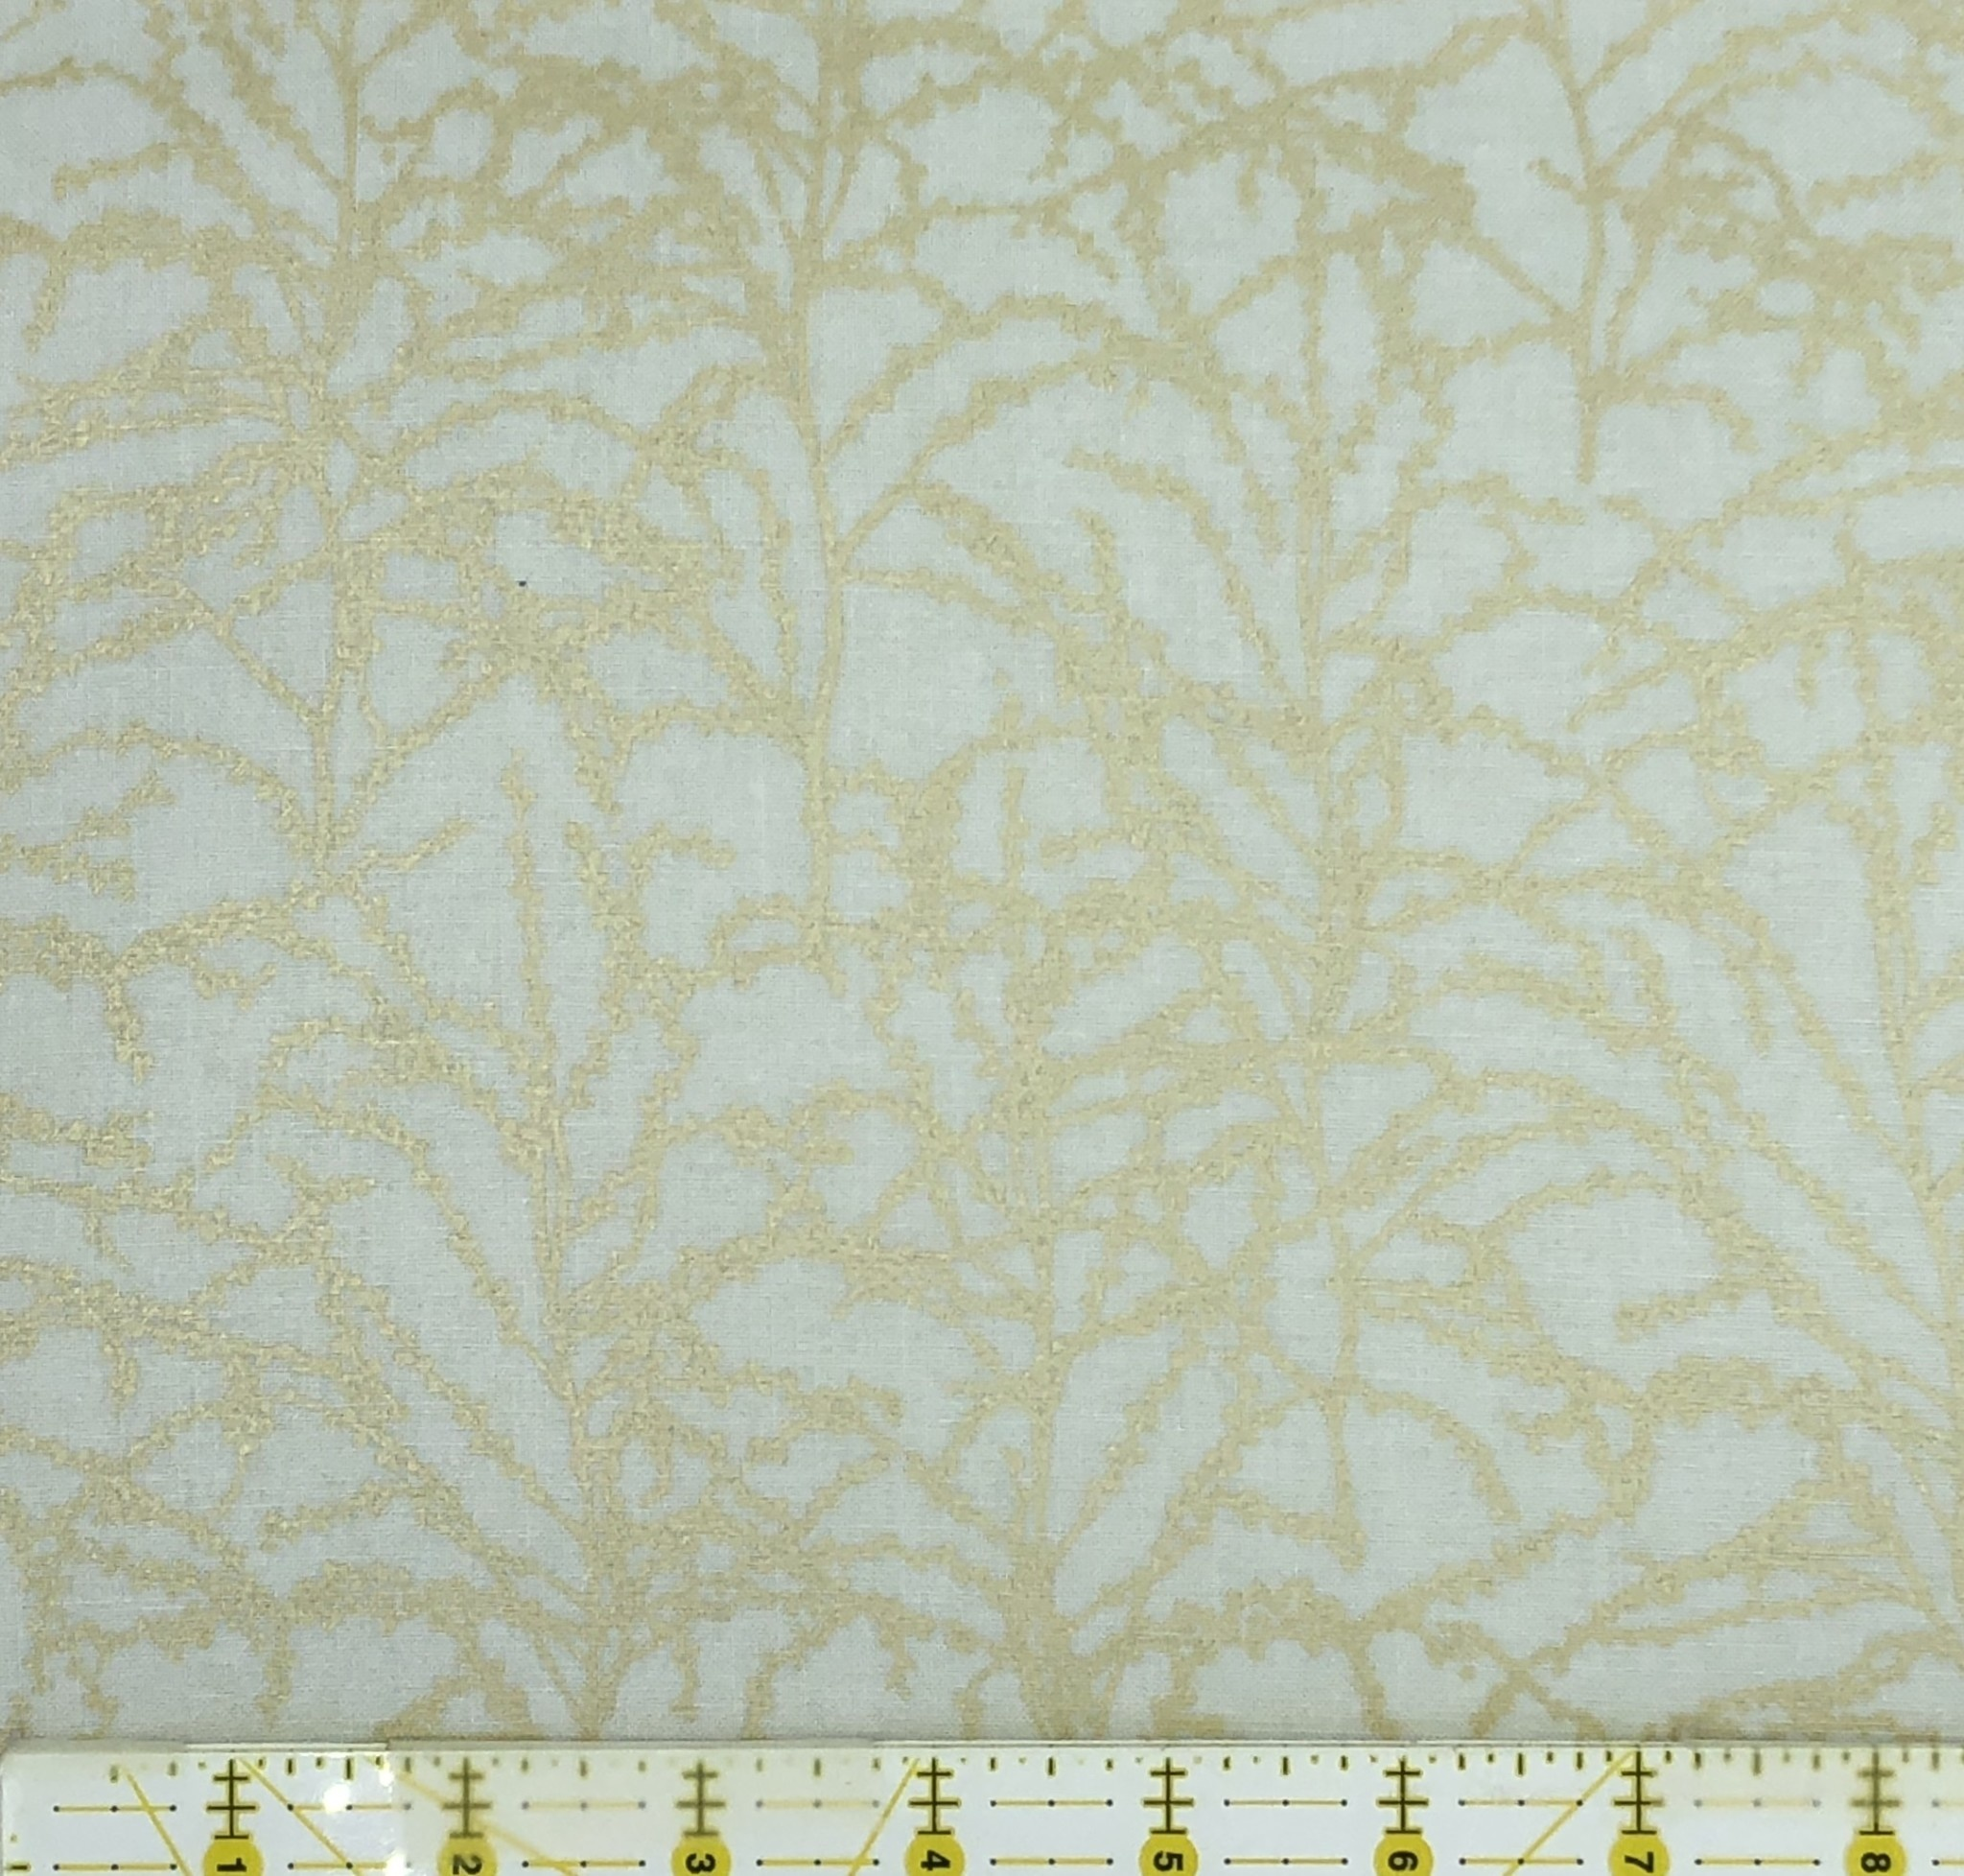 ROBERT KAUFMAN WINTER SHIMMER 18214/347 BY R KAUFMAN $0.20/CM OR $20/M